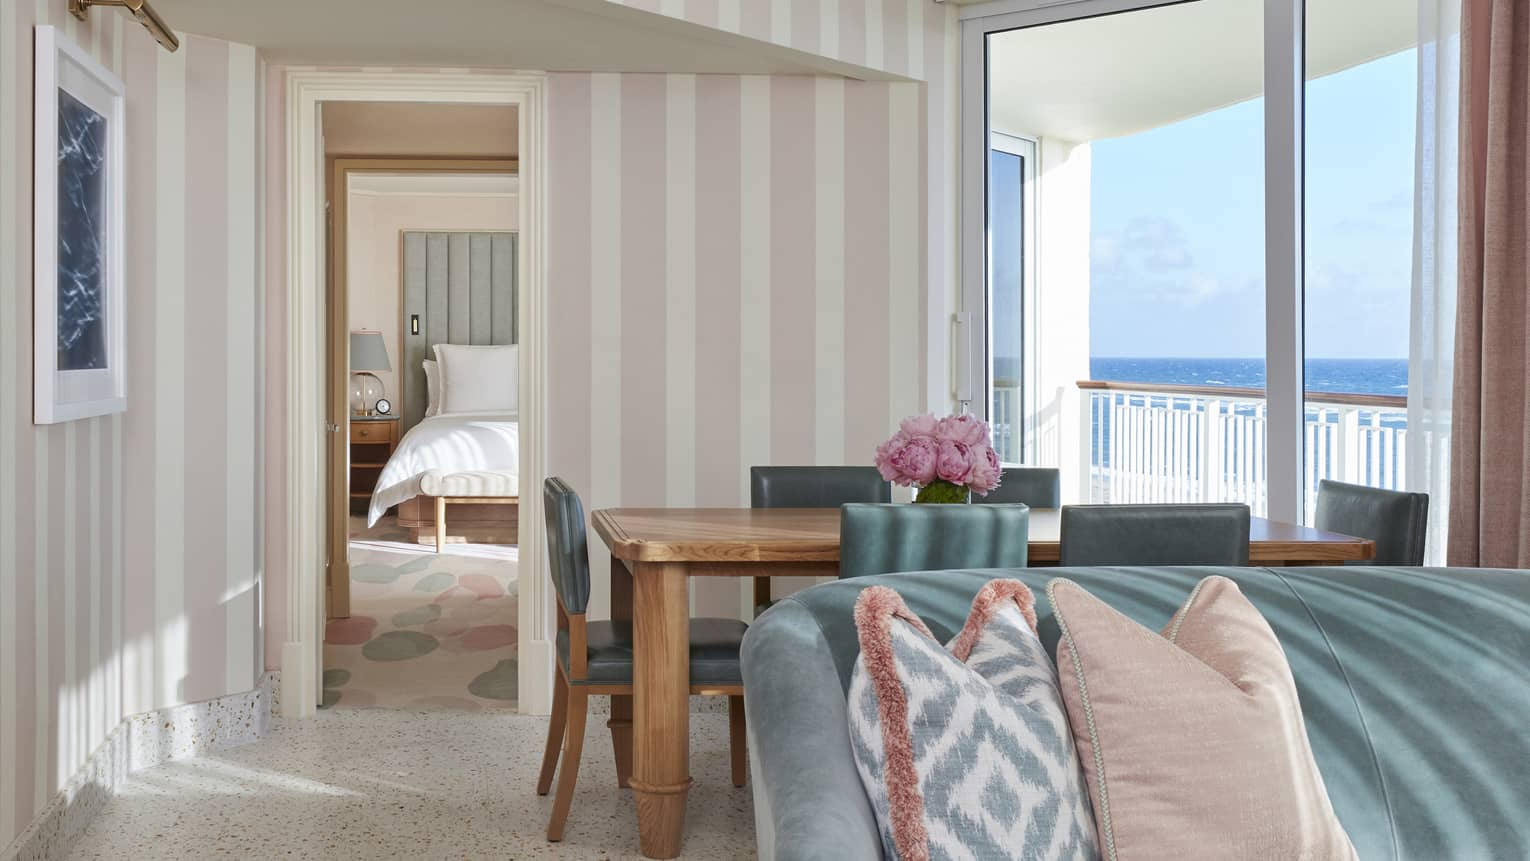 Ocean Grand Suite's living area, featuring a sofa, dining table and light pink- and white-striped walls